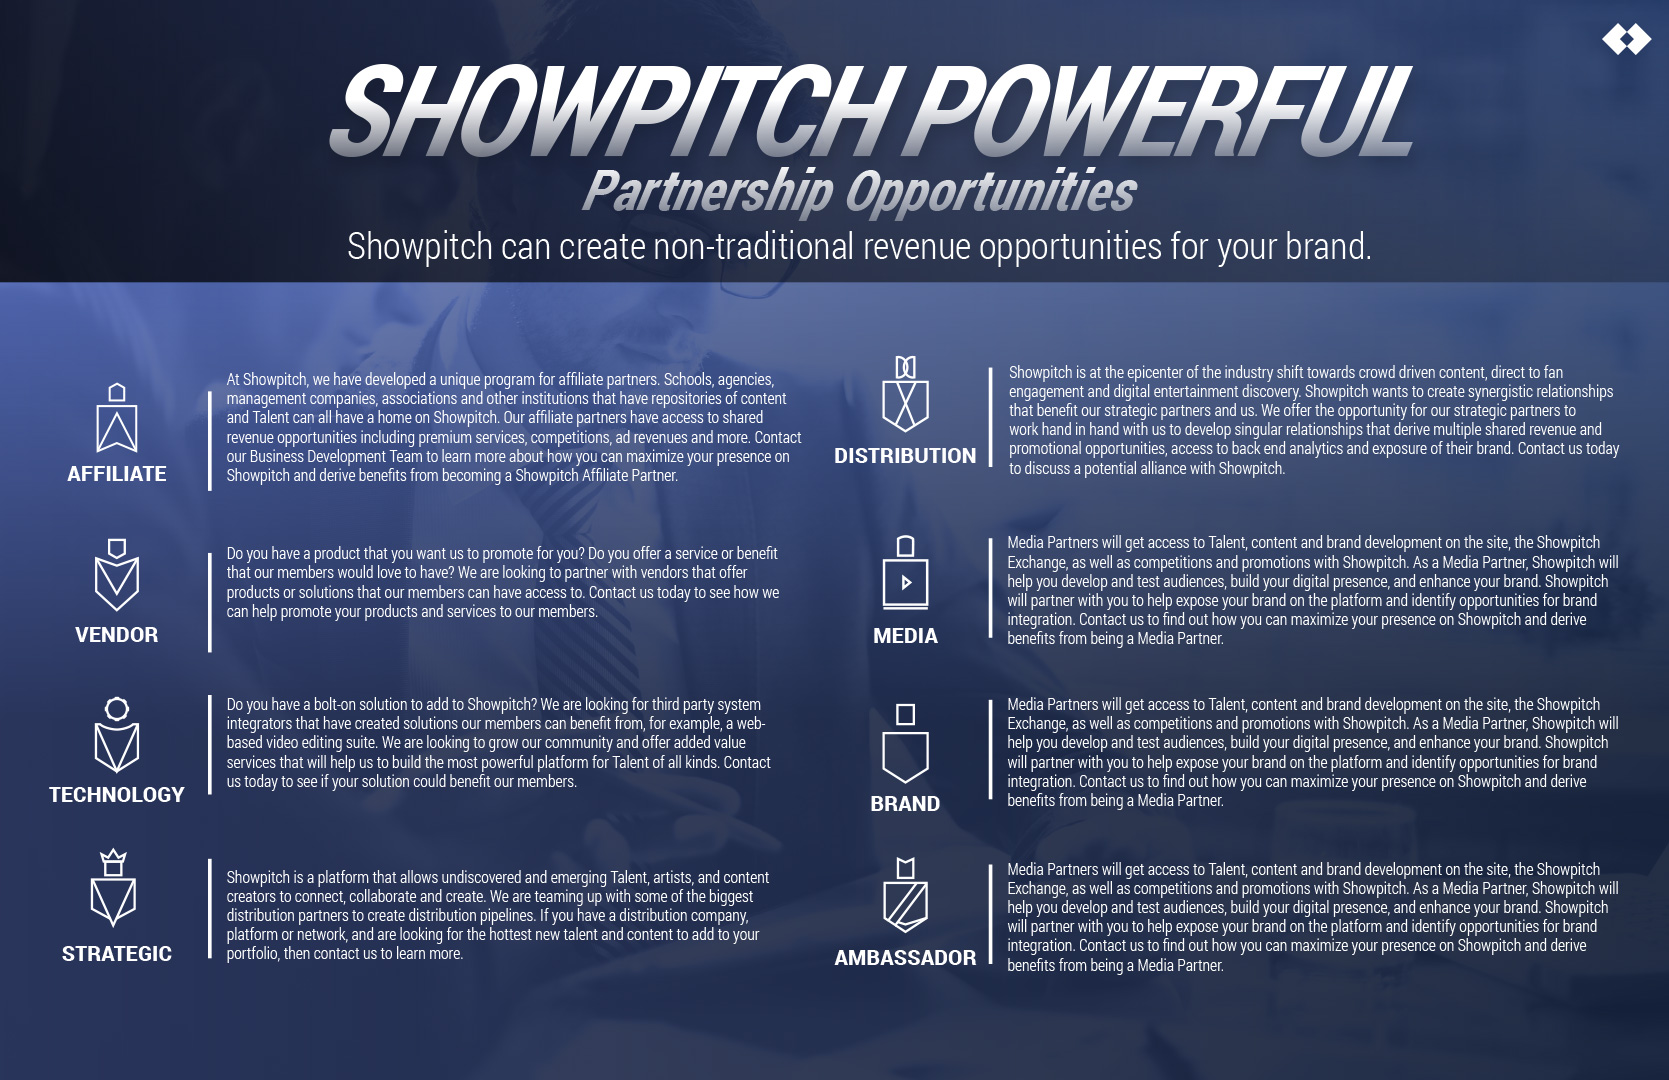 OVERVIEW-Showpitch_Page_20.jpg